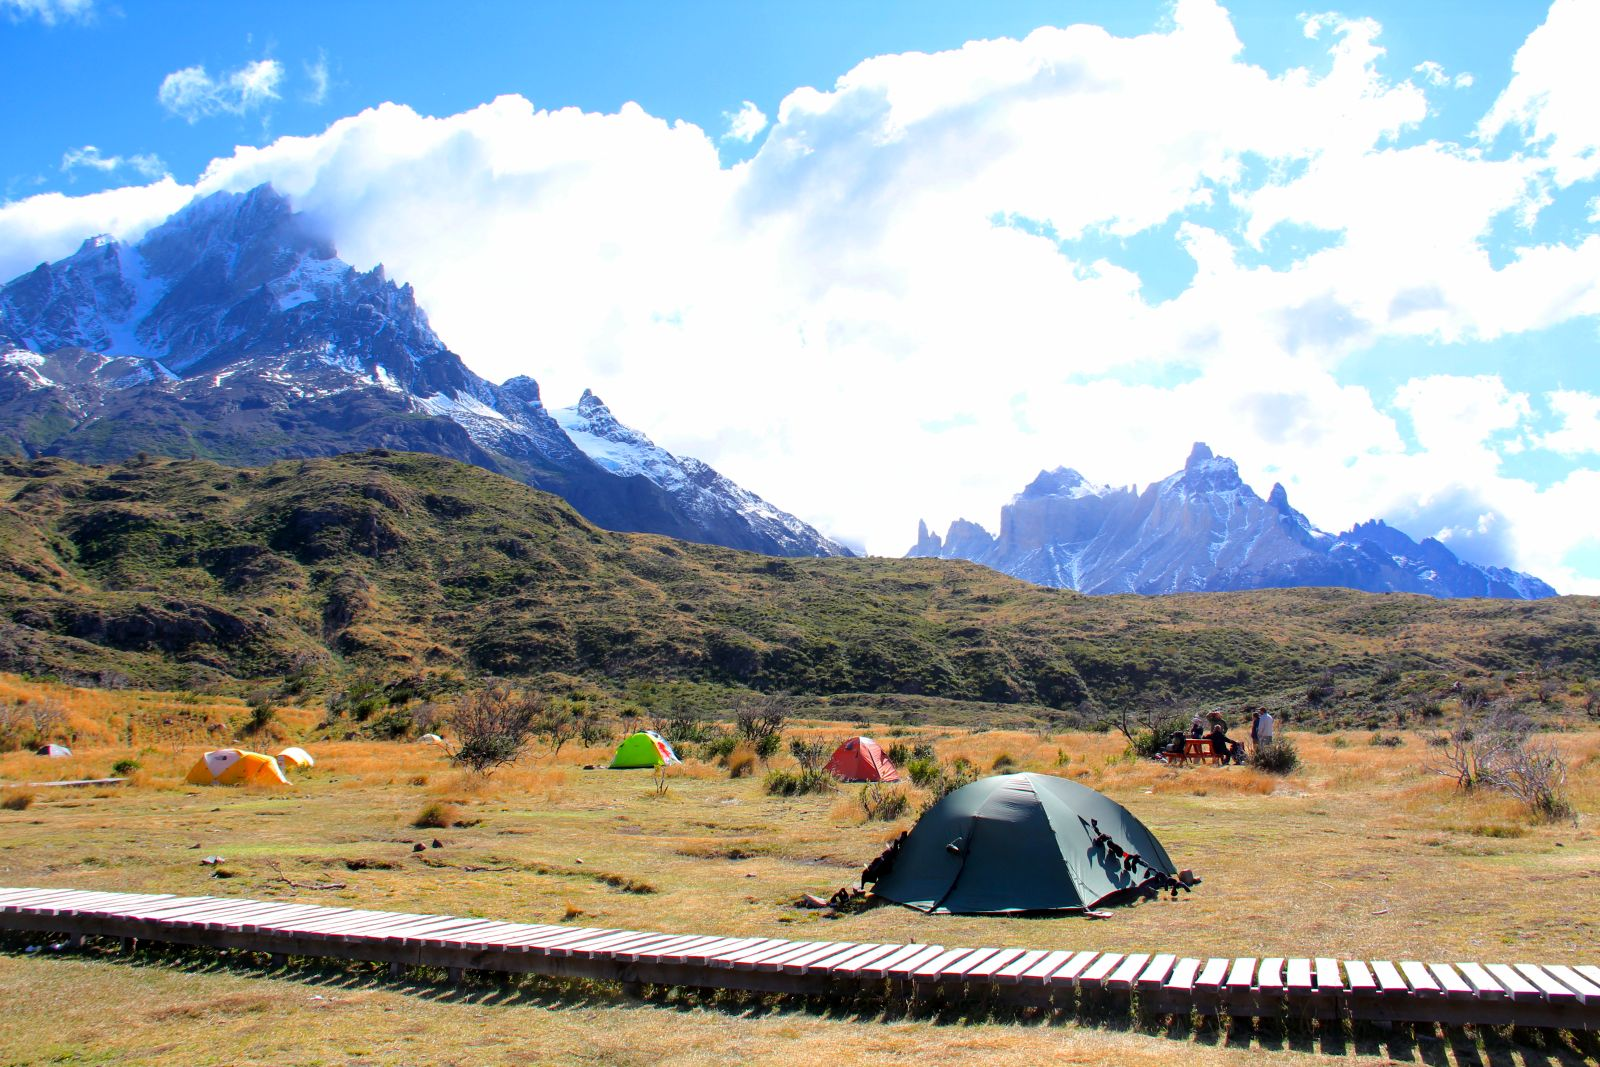 A Trek through Torres Del Paine Chile 2